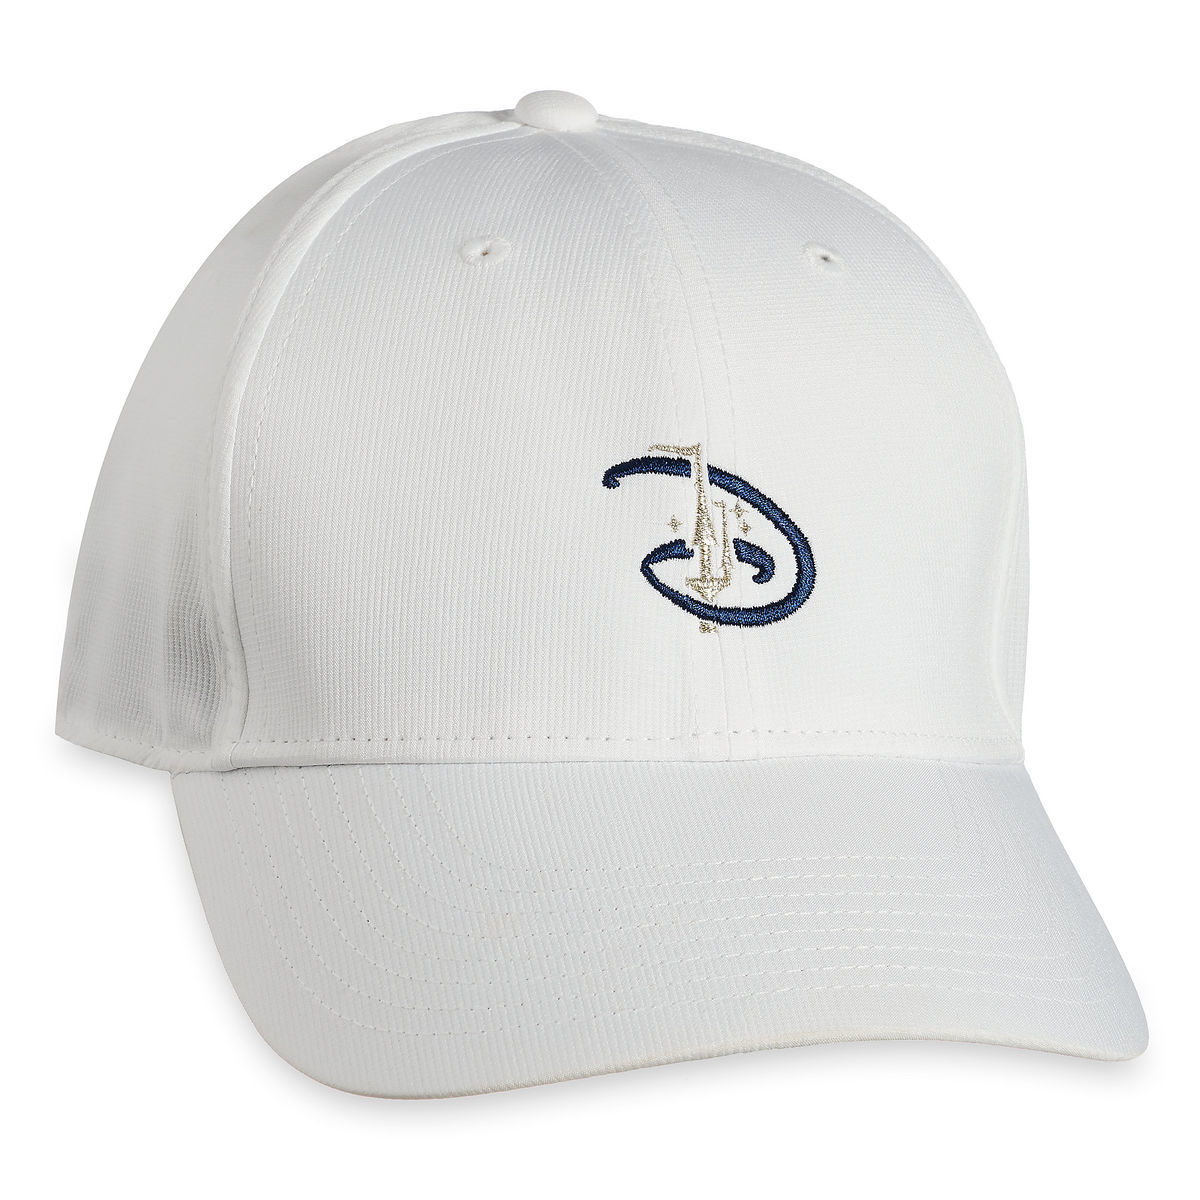 4a365a605221e Disney Hat - Nike Baseball Cap - Walt Disney World - White